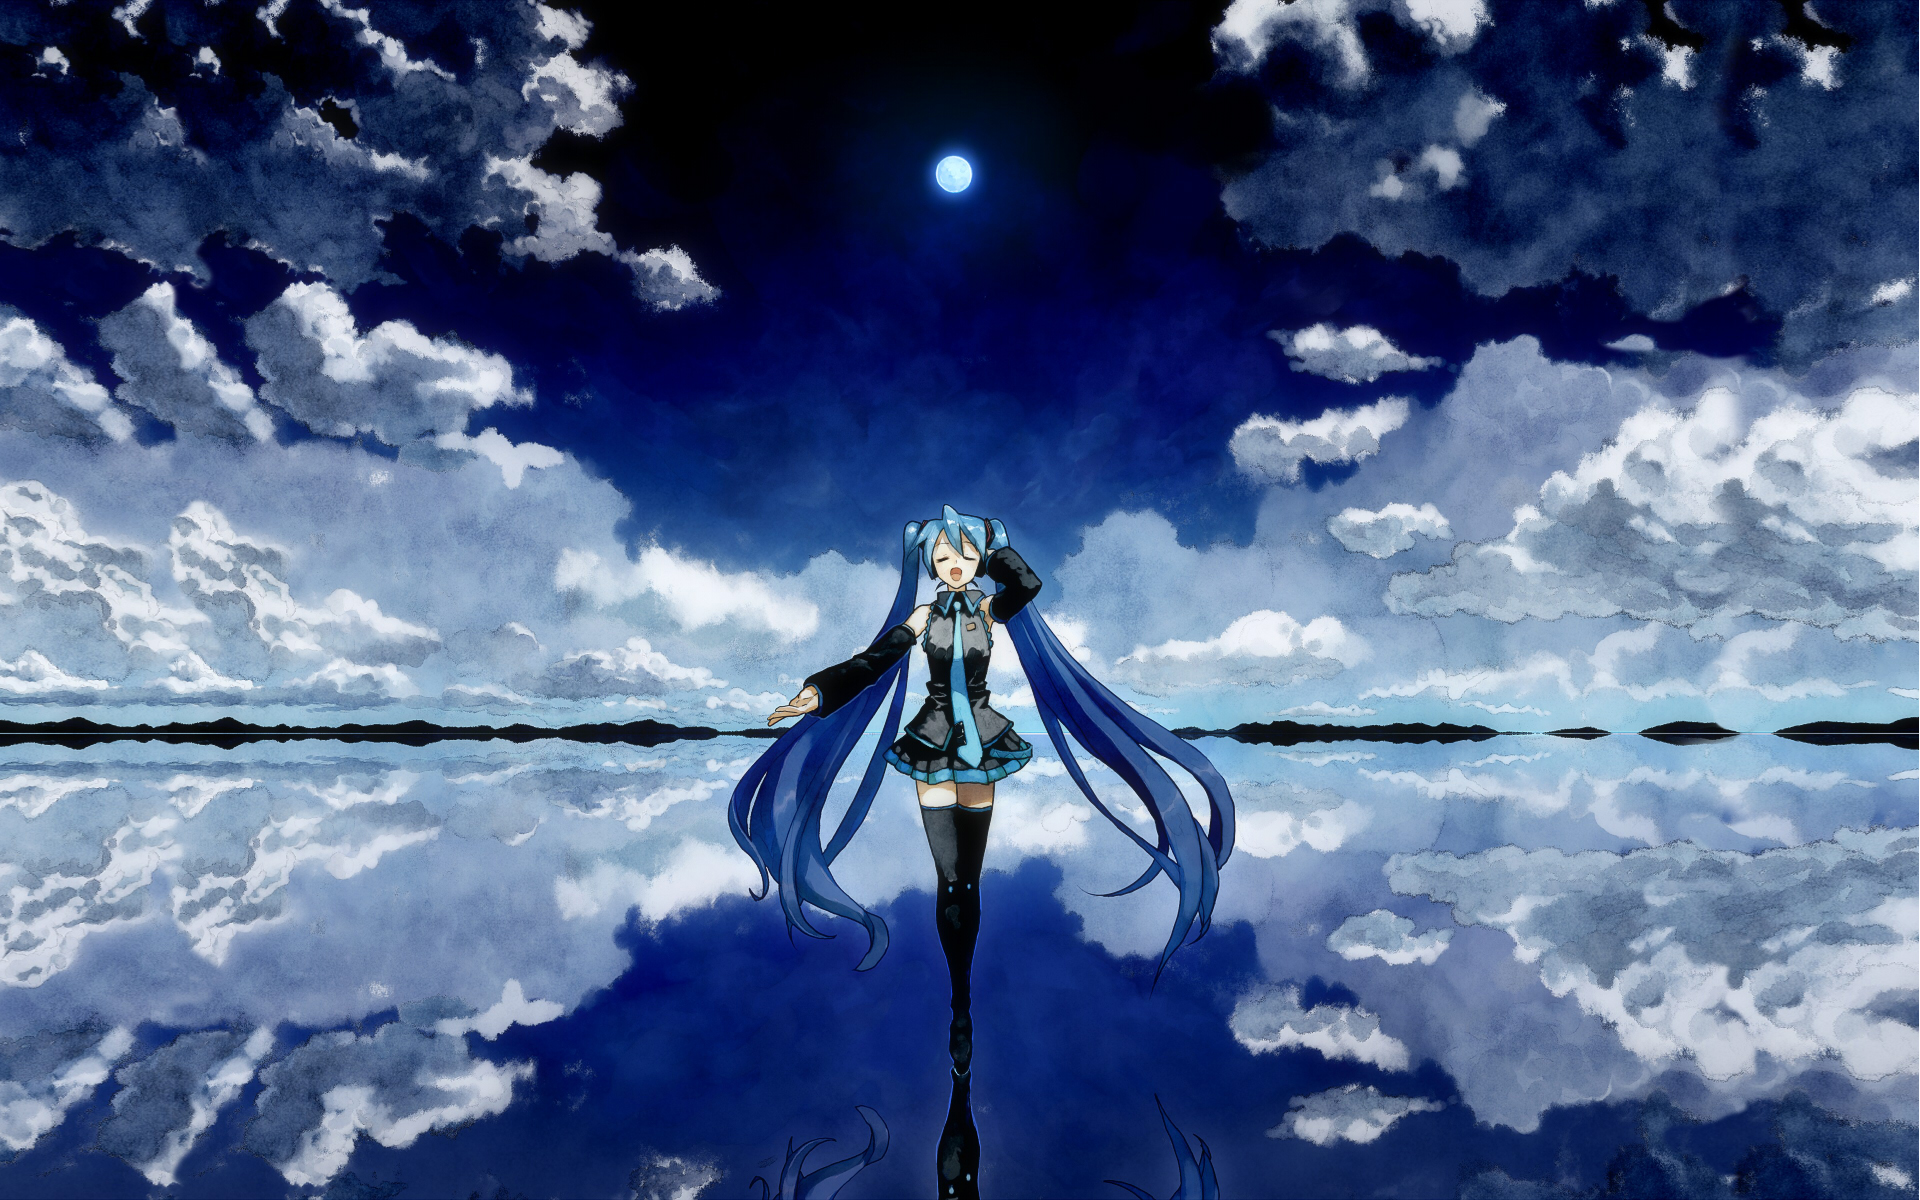 Anime - Vocaloid  - Cute - Girl - Sky - Water - Anime - Hatsune Miku - Hatsune - Miku Papel de Parede